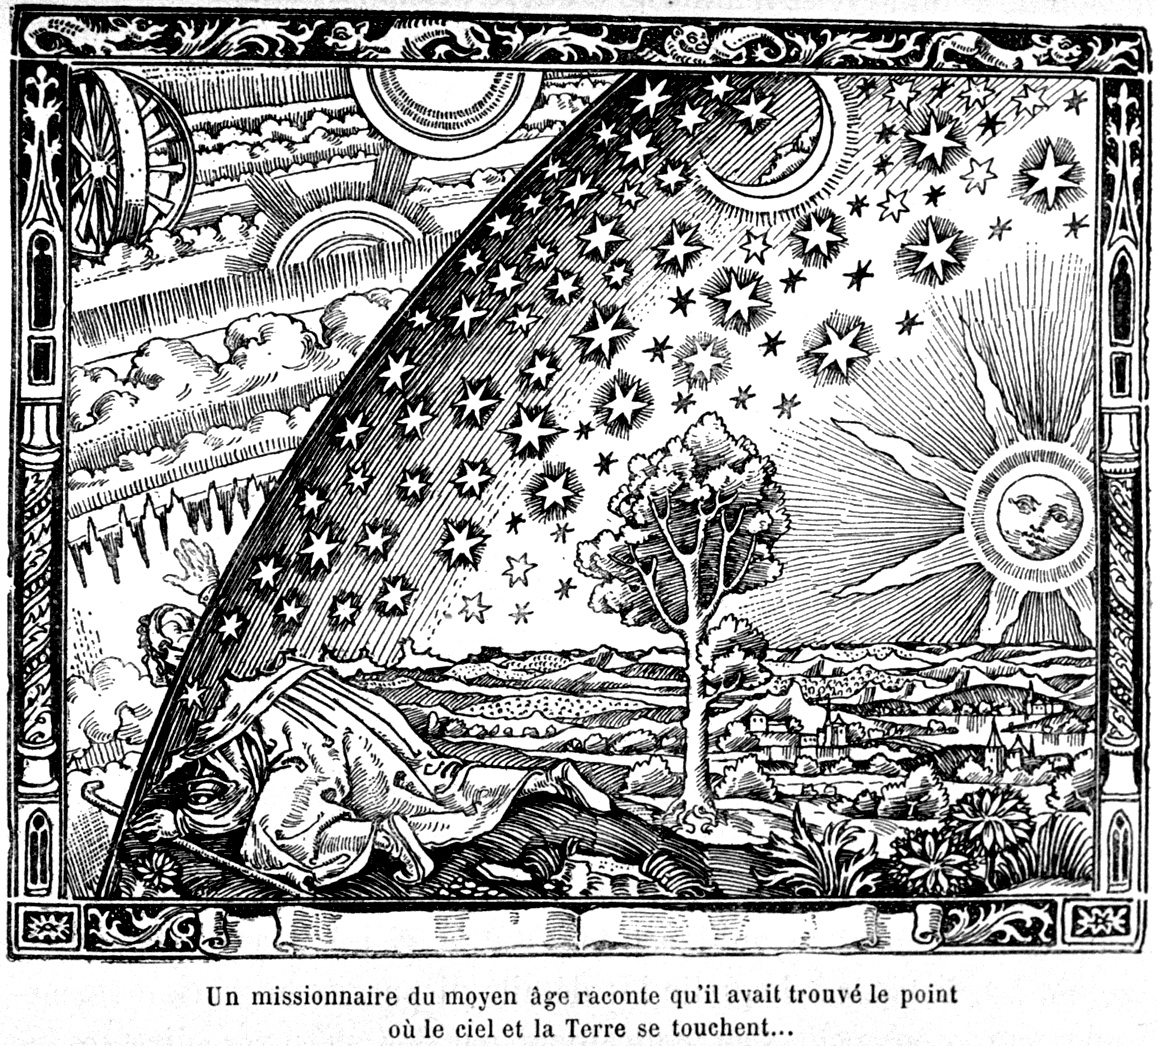 2013-01-08-Flammarion_with_caption.jpg